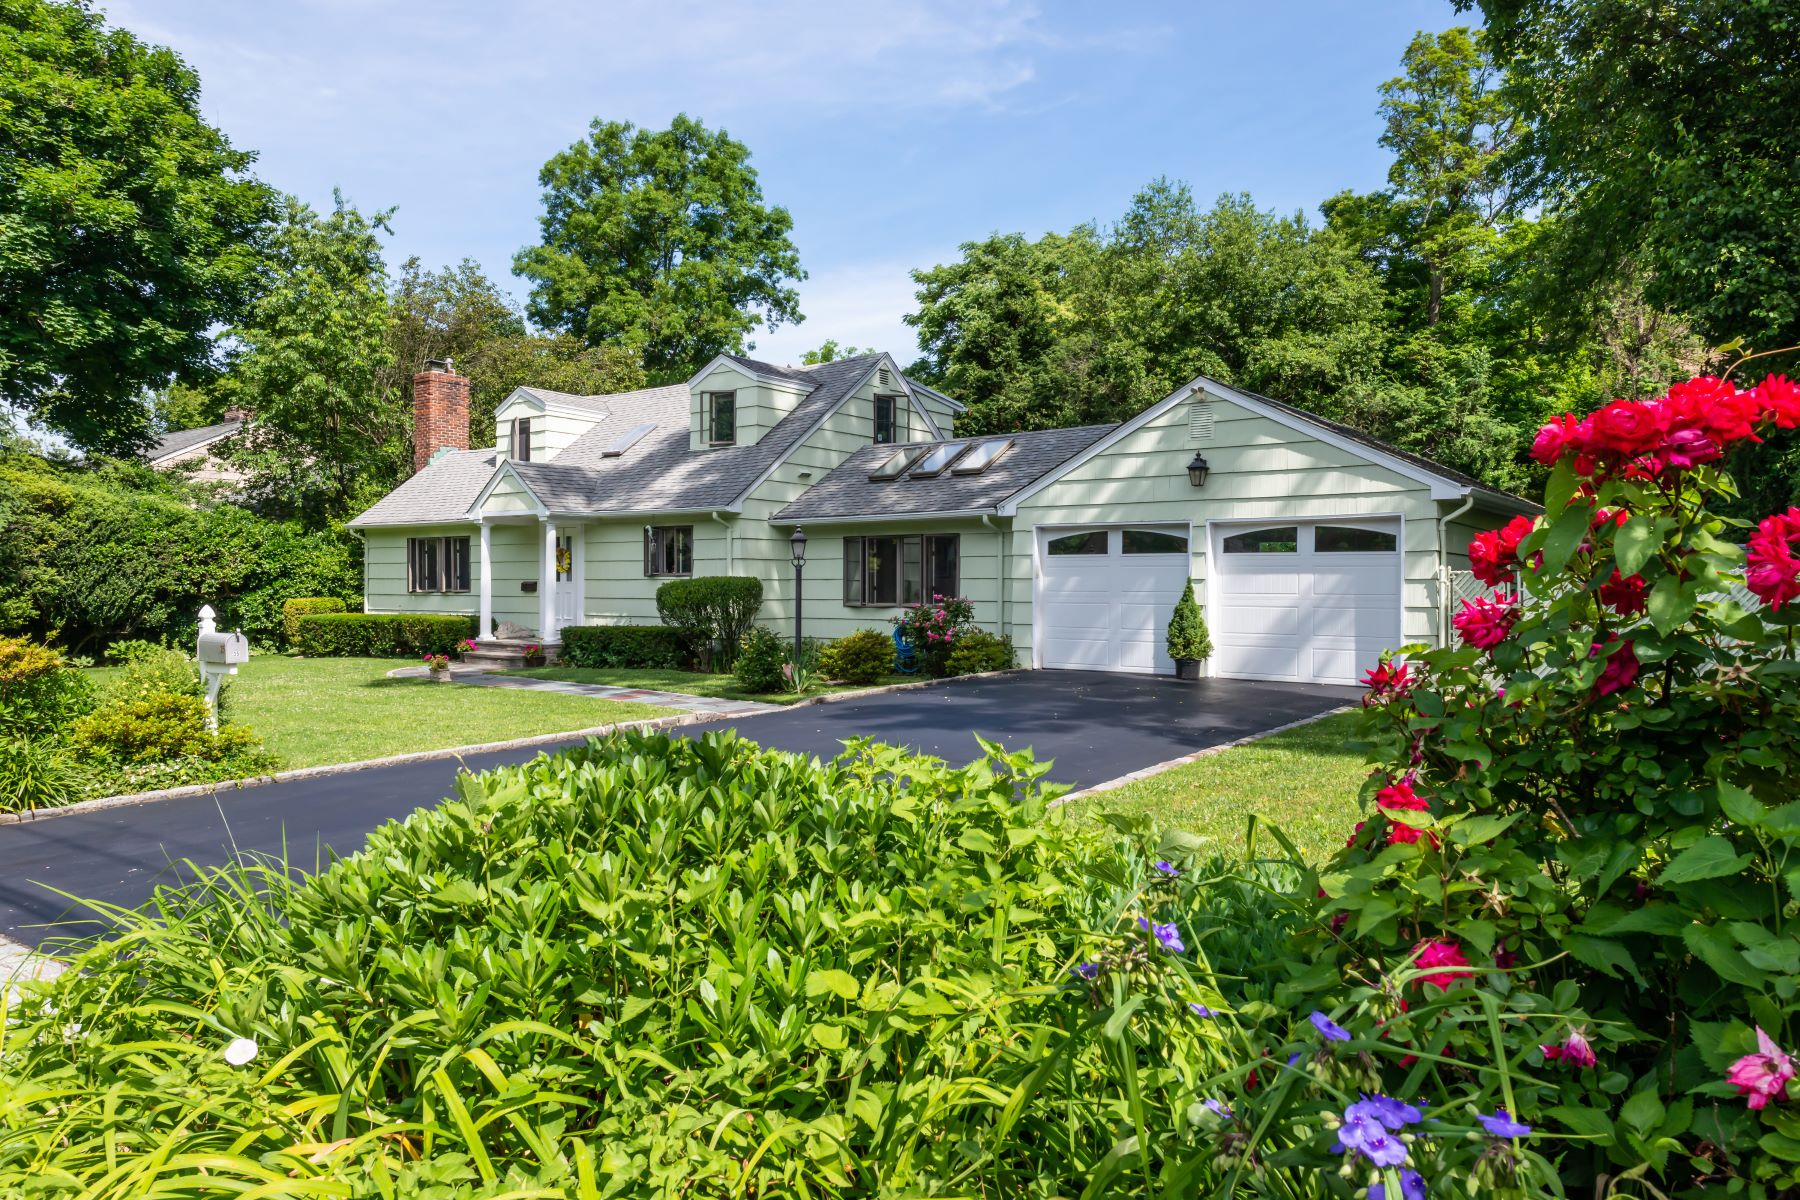 Single Family Homes for Active at 35 Richards Road, Port Washington, Ny, 11050 35 Richards Road Port Washington, New York 11050 United States